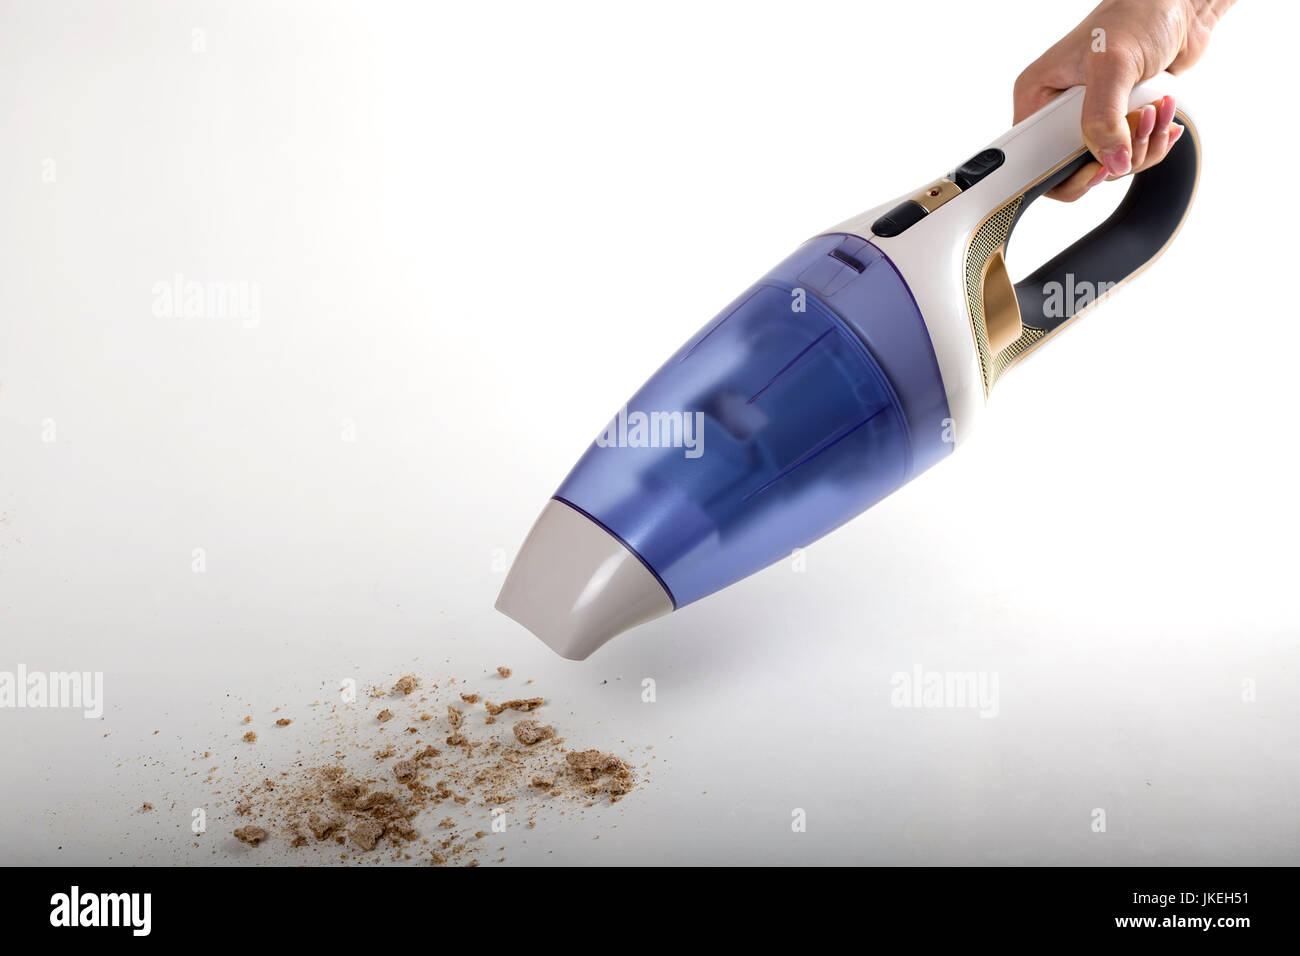 Female Hand Cleaning Bread Crumbs With A Portable Vacuum Cleaner